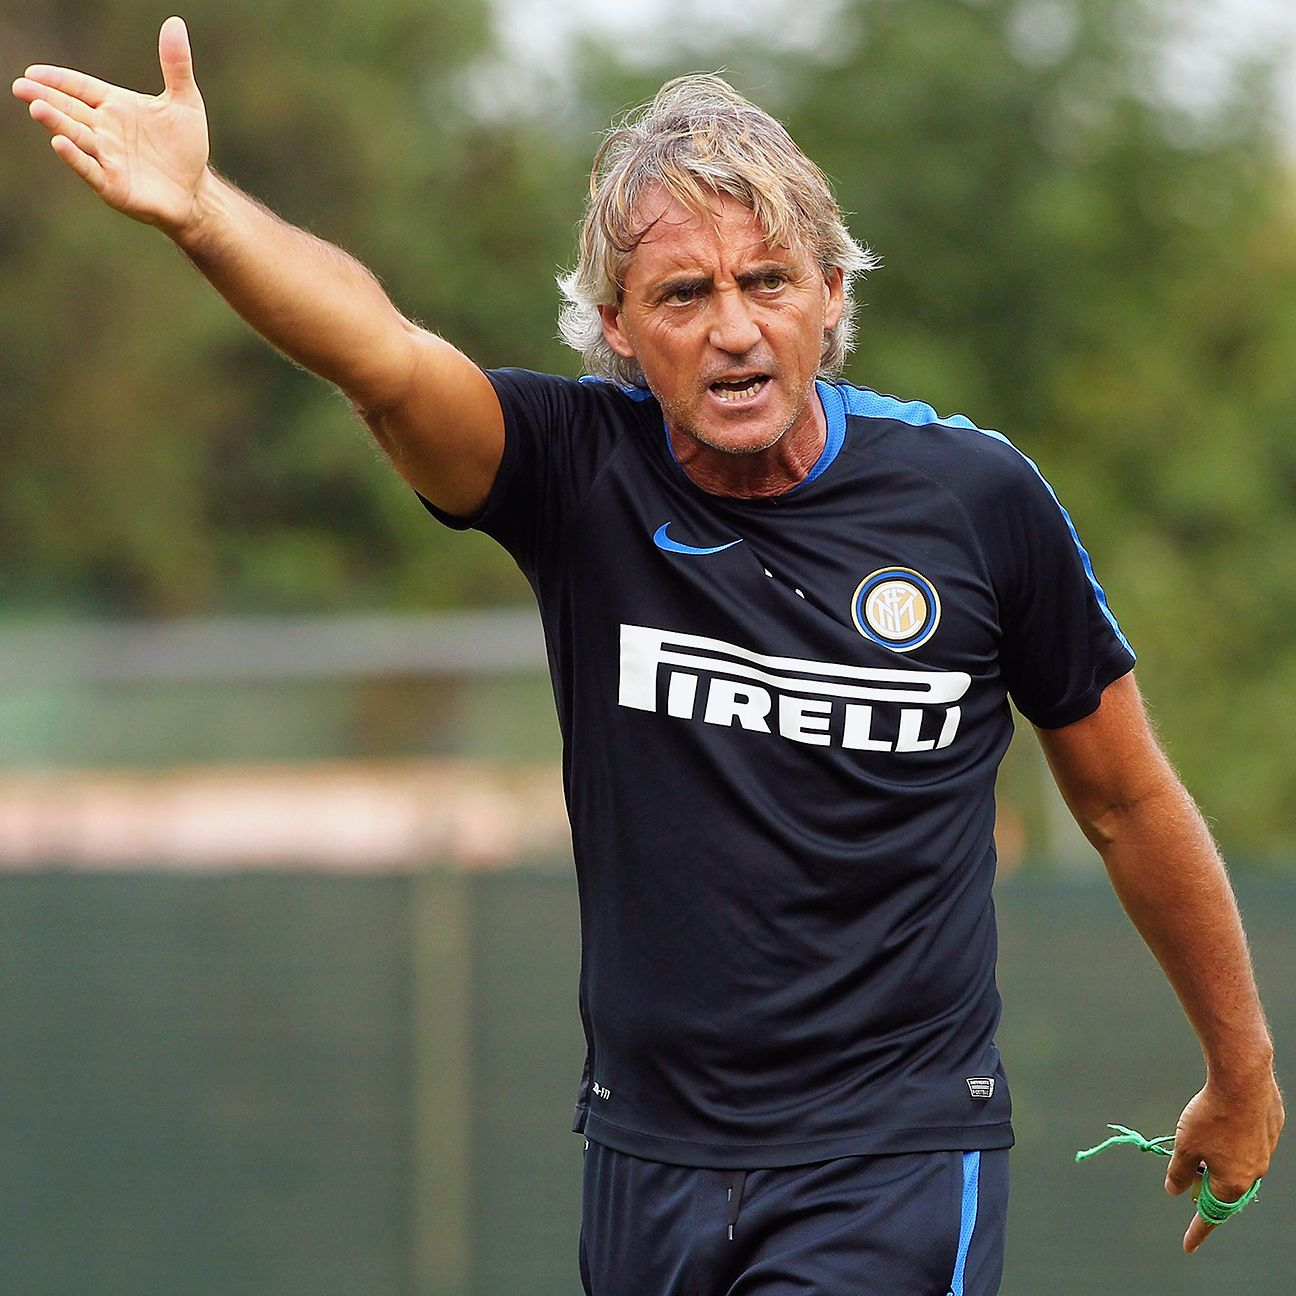 Roberto Mancini's narrow 4-3-1-2 has yielded two wins to open Inter's Serie A campaign.